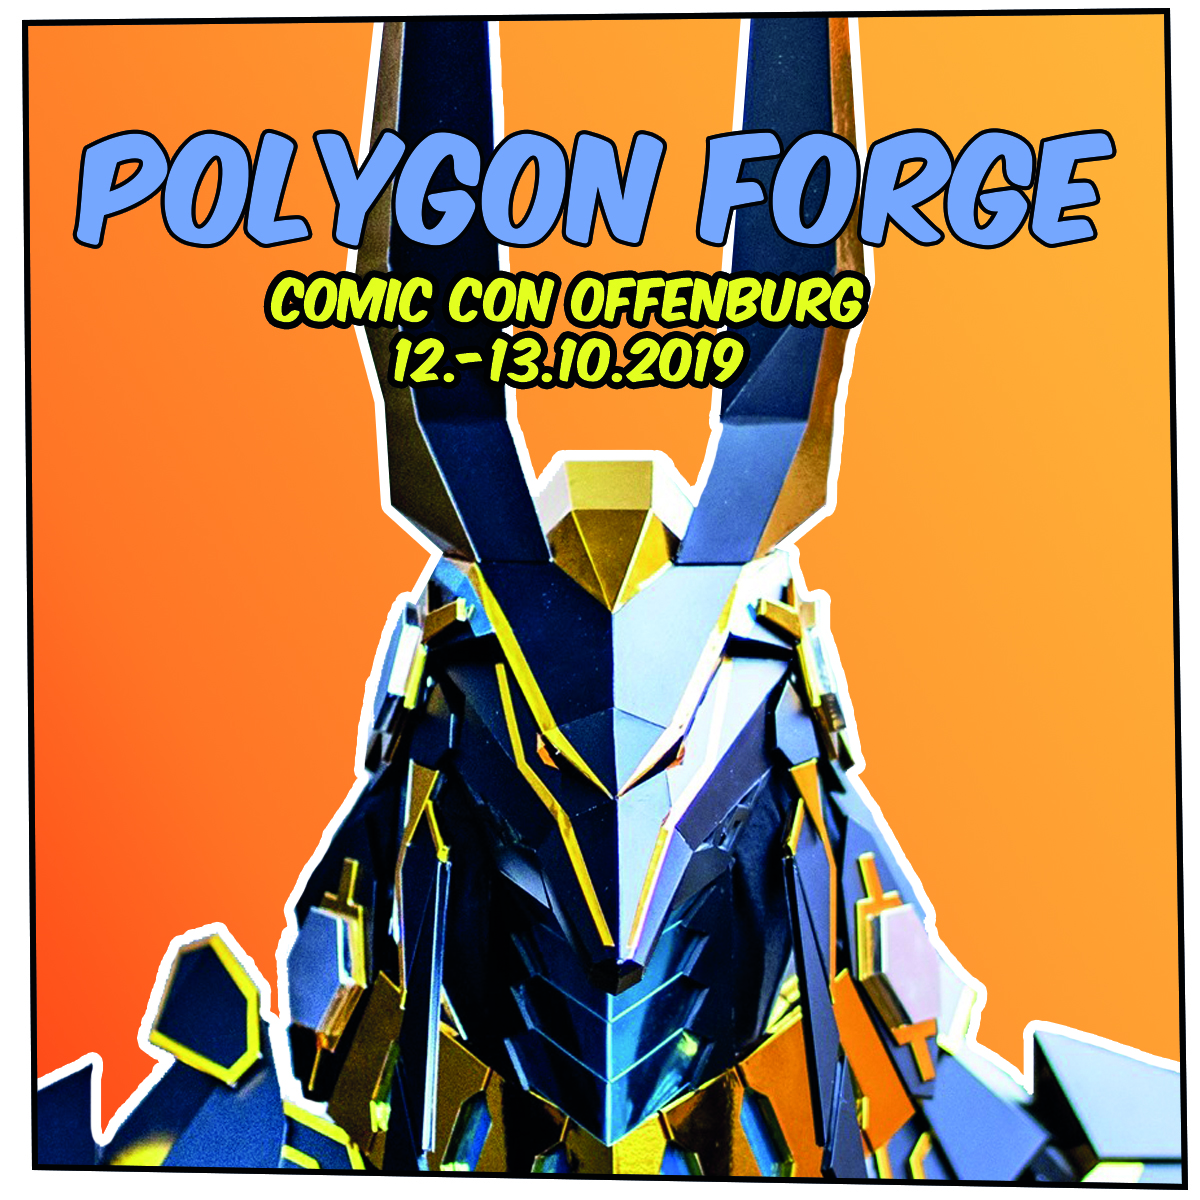 Poligone_Forge_Cosplay